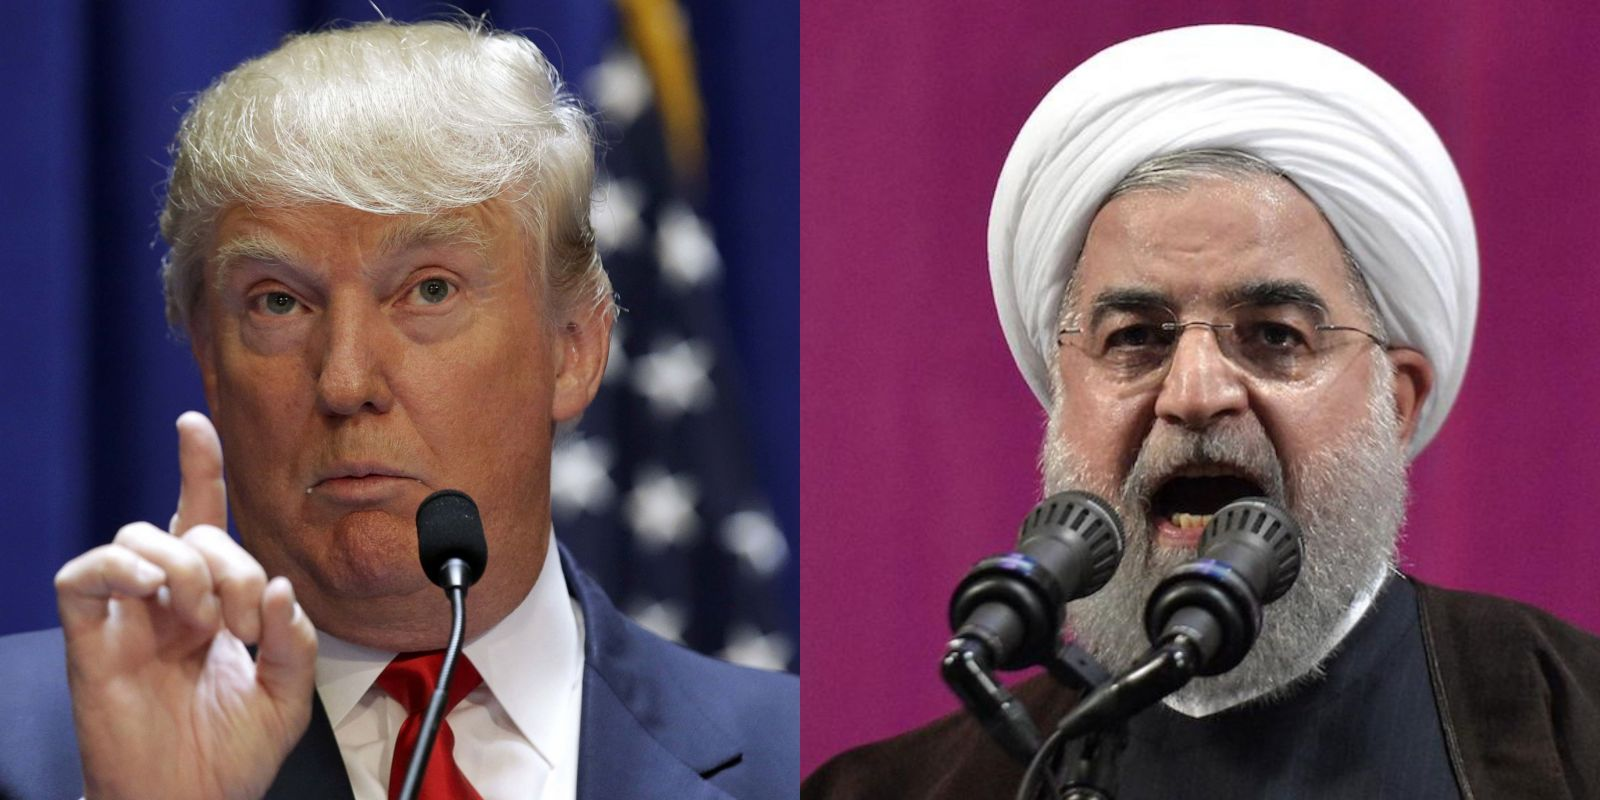 The first round of Trump's sanctions against Iran enters into force